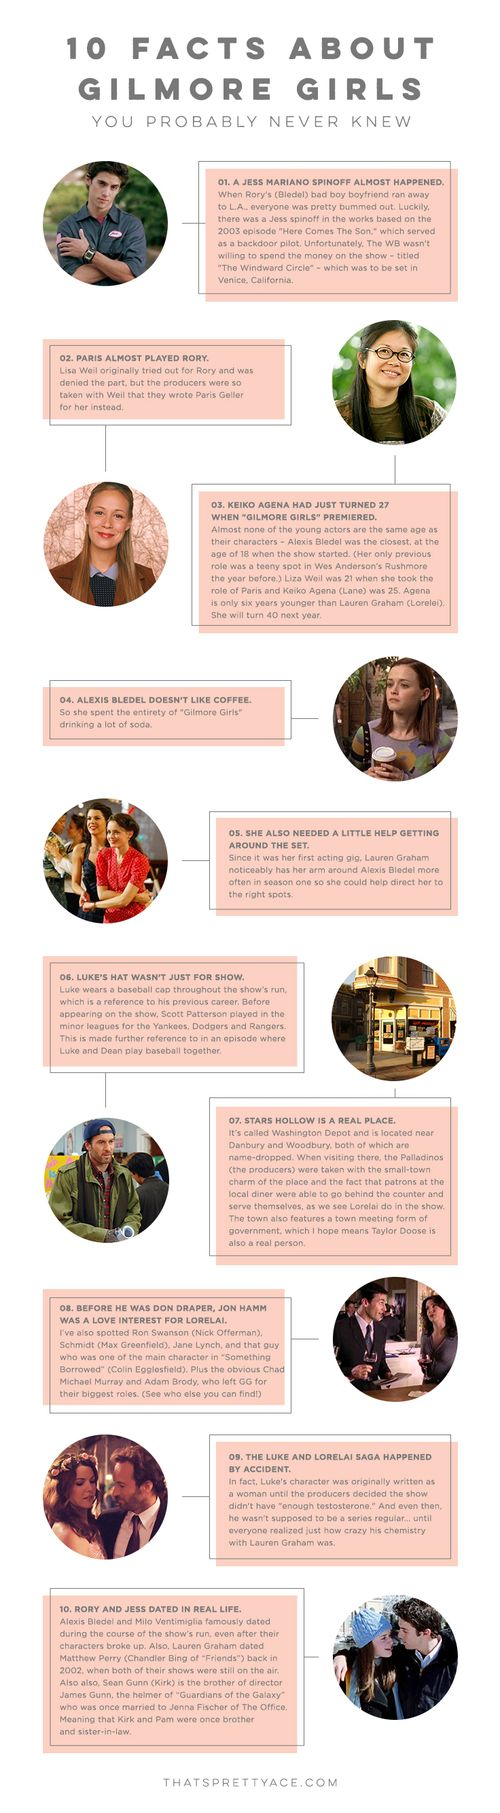 10 Facts About Gilmore Girls You Probably Never Knew — that's pretty ace